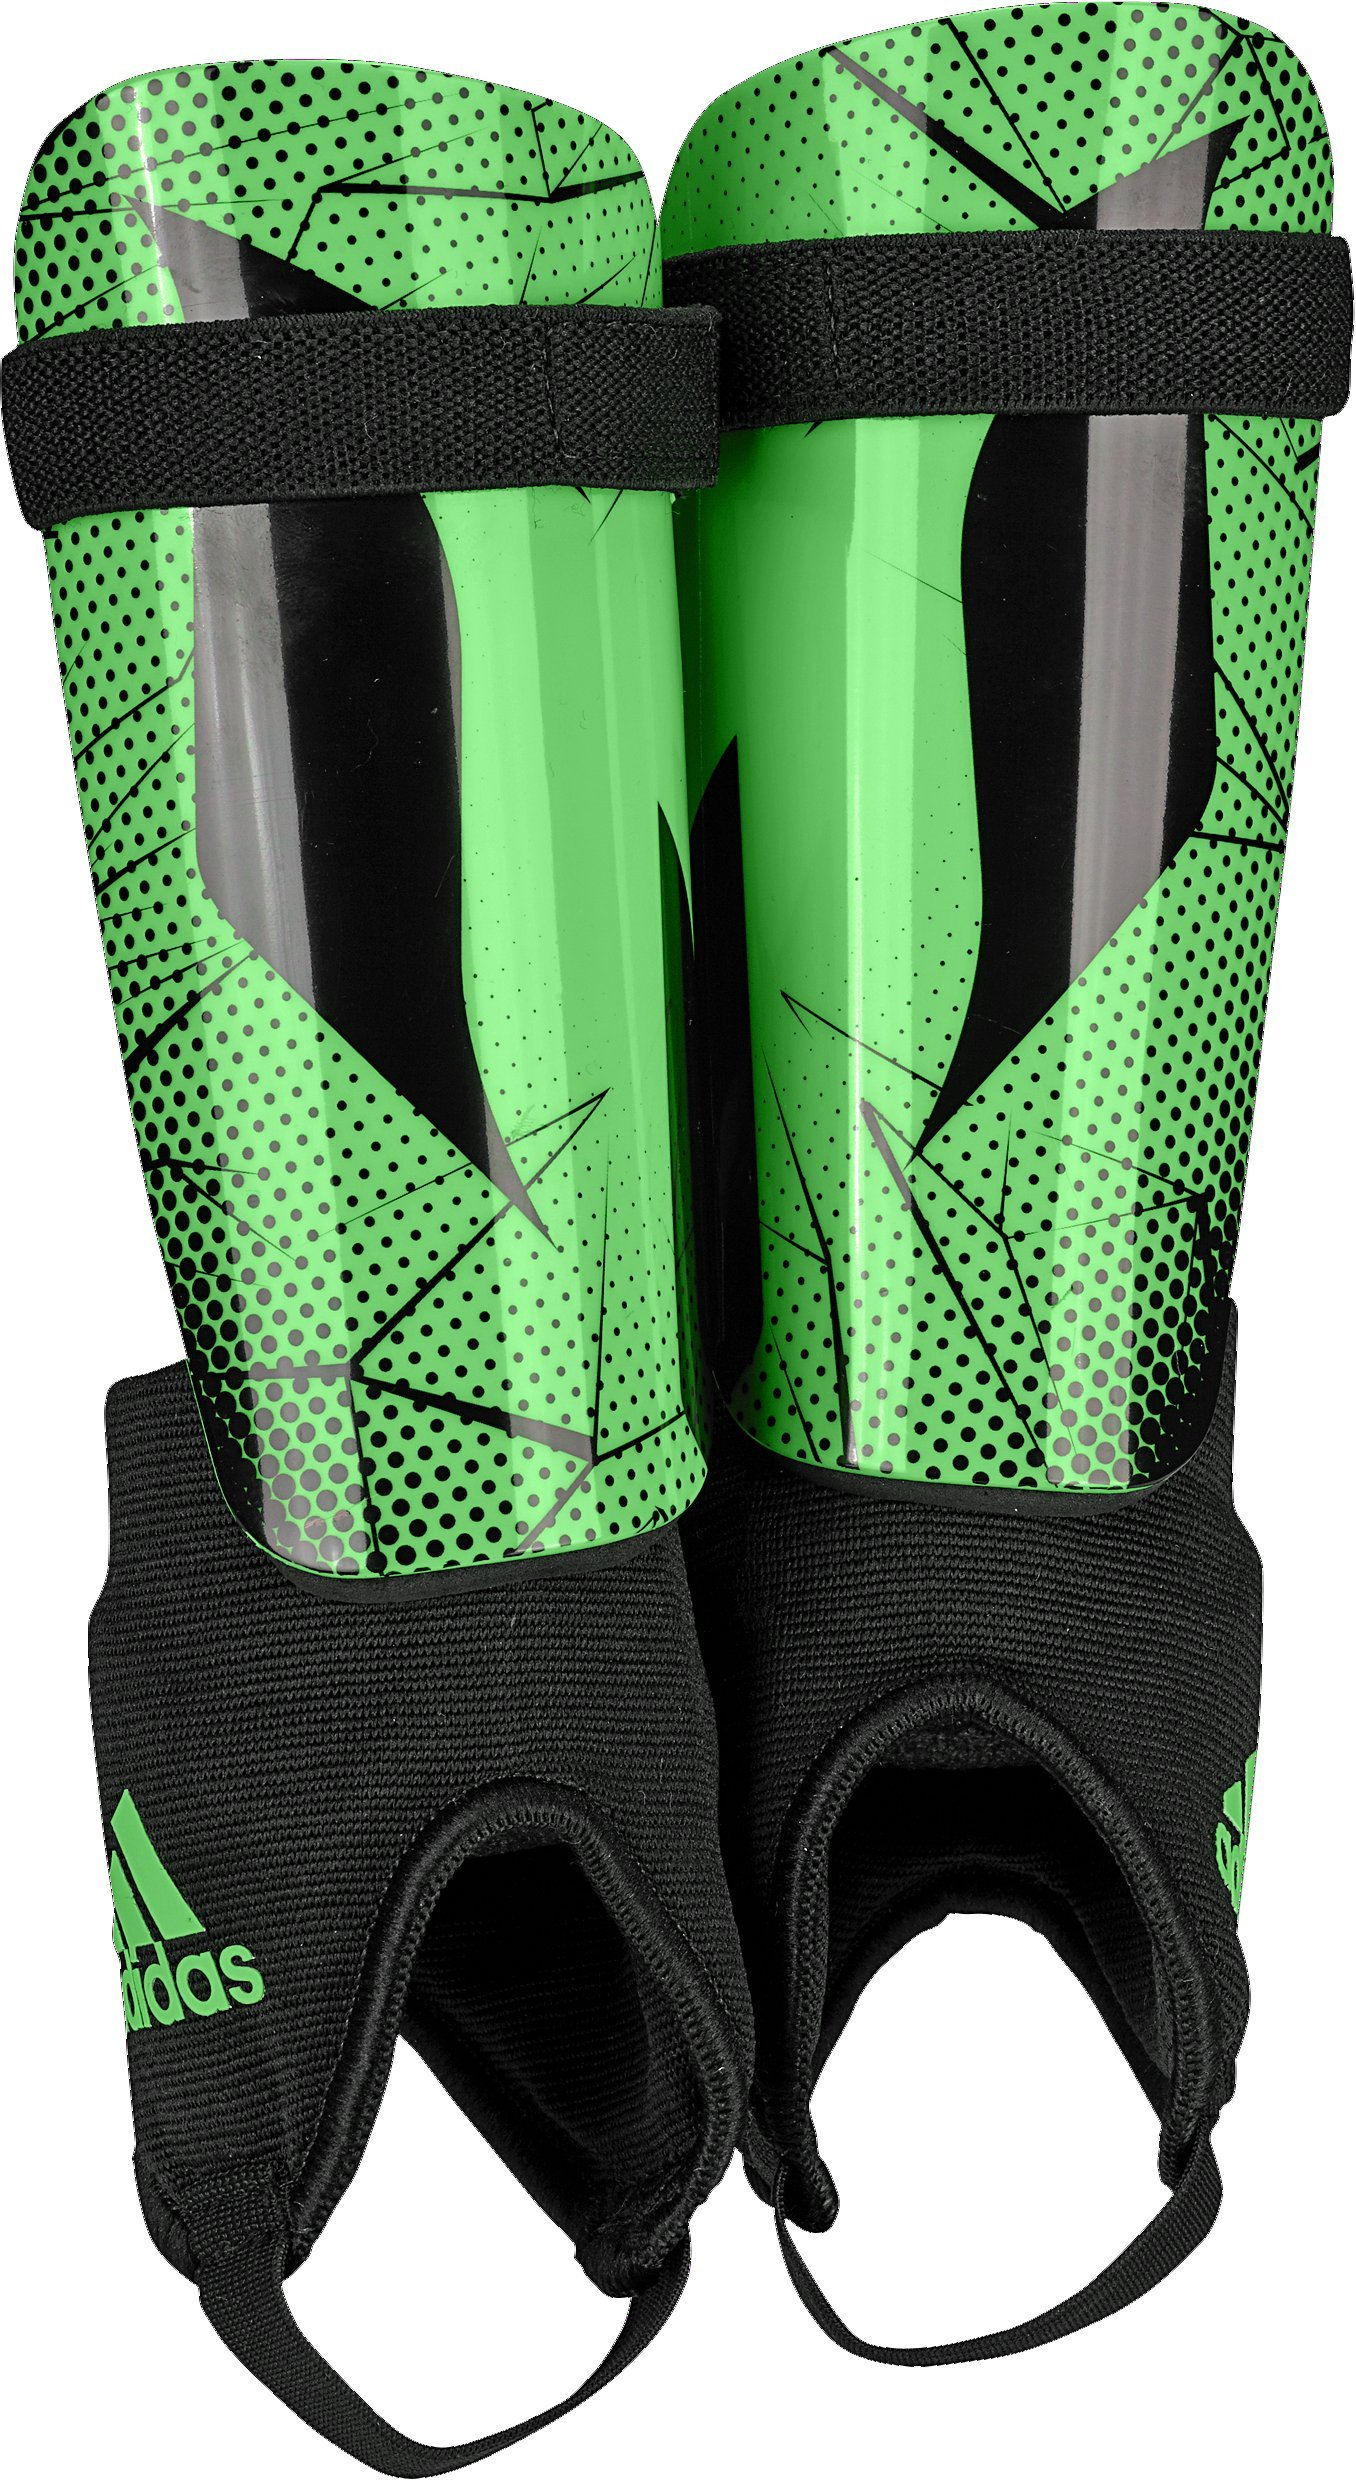 a00a72e74 Galleon - Adidas Performance Messi 10 Youth Shin Guards